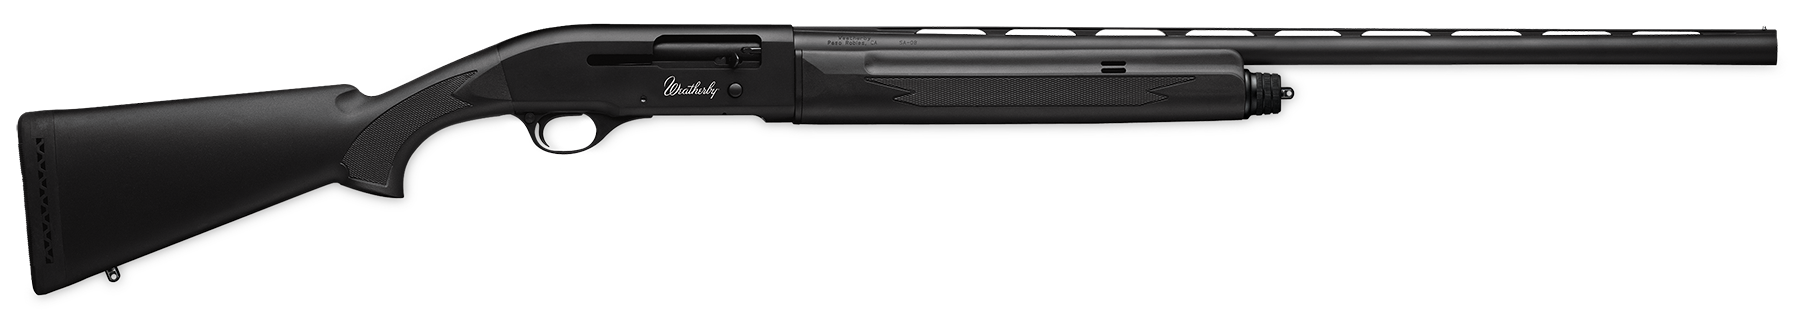 Weatherby  SA-08 Semi-Automatic 12 ga 28